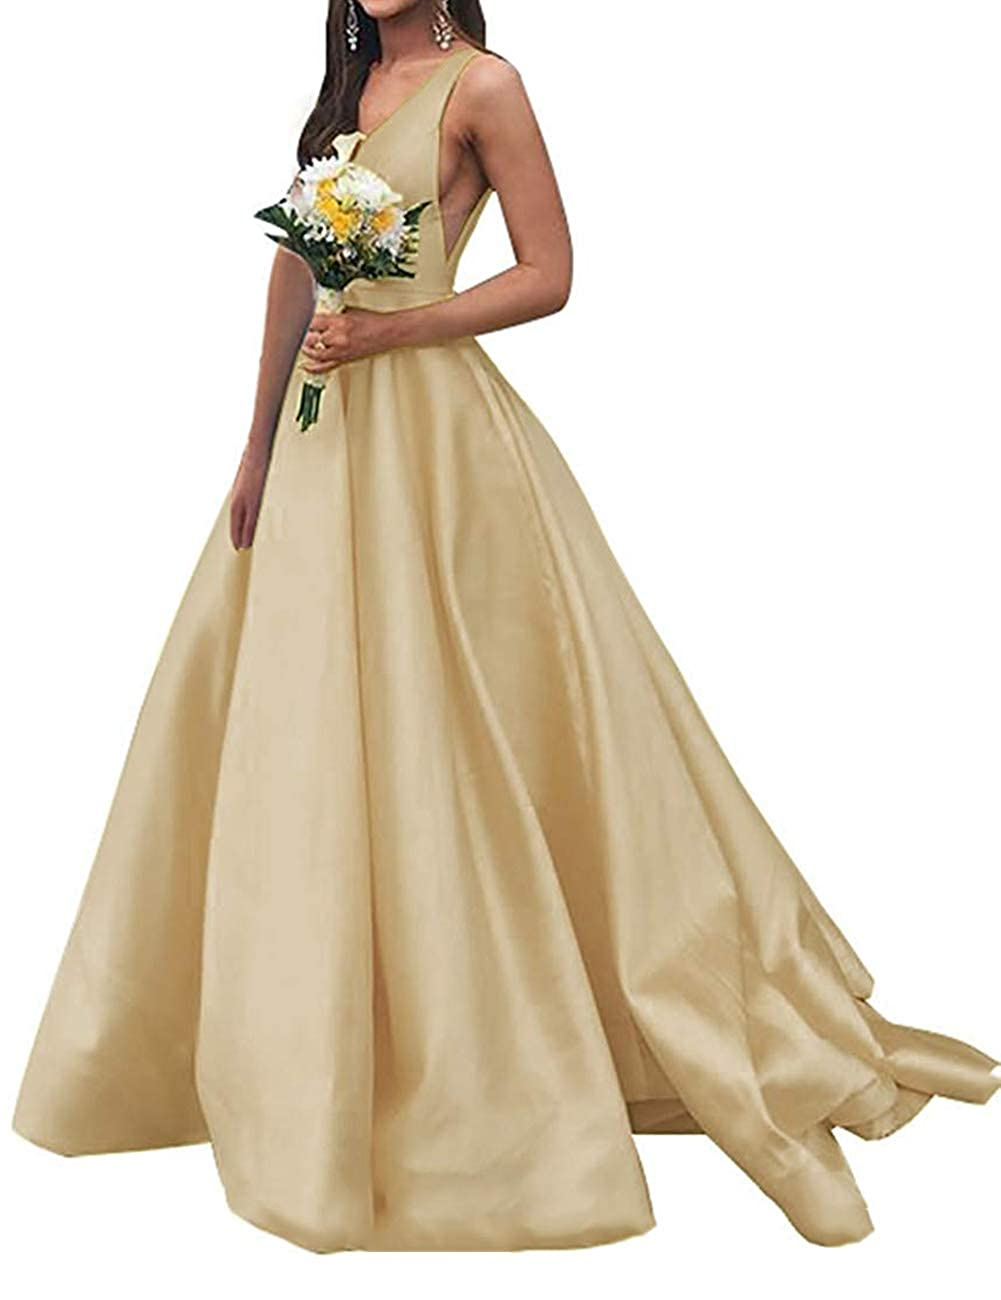 Champagne JAEDEN Prom Dresses Formal Evening Gowns Long Evening Dresses V Neck Satin Prom Gowns Sleeveless